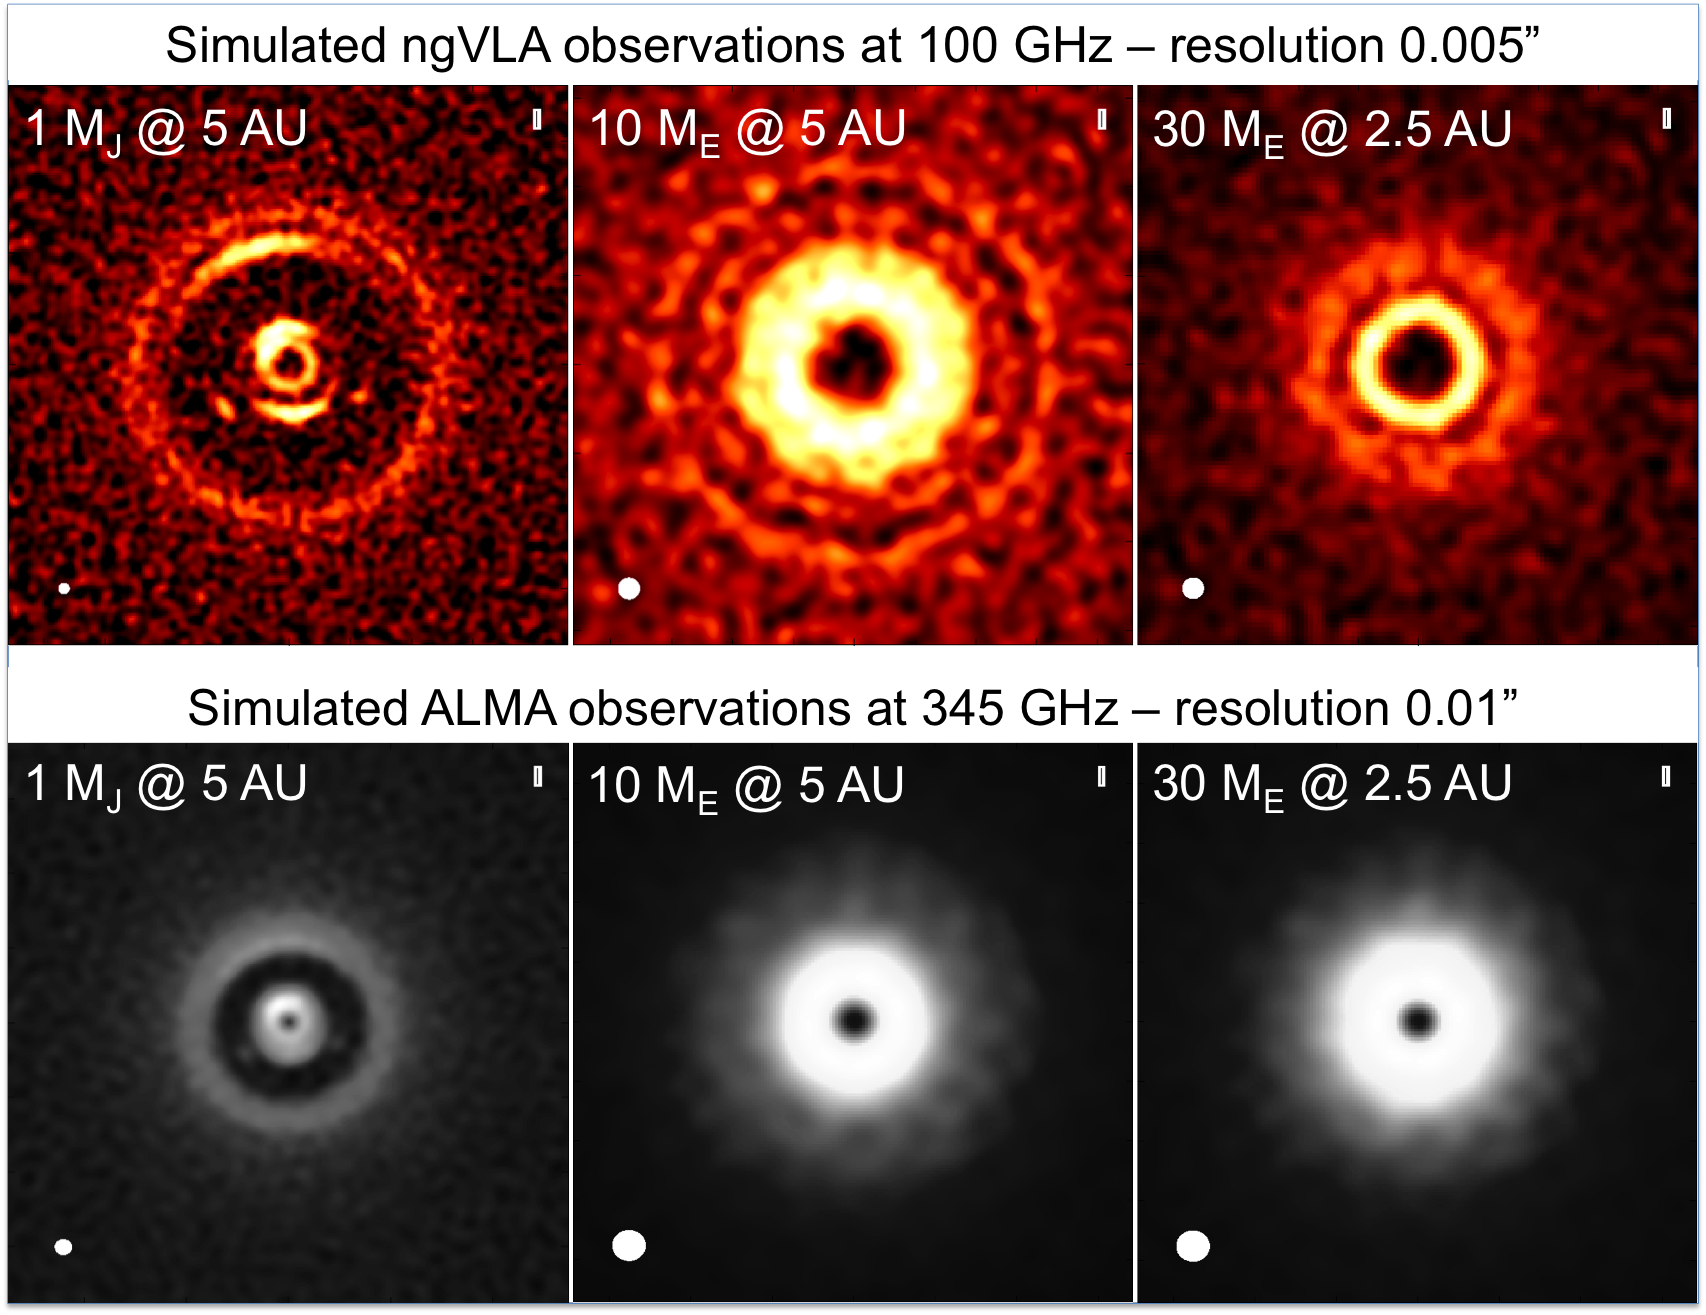 Ricci et al. (2018, submitted) – ngVLA- (top row) and ALMA- (bottom row) simulated observations of the continuum emission of a protoplanetary disk perturbed by a Jupiter mass planet orbiting at 5 AU (left column), a 10 Earth mass planet orbiting at 5 AU (center column), and a 30 Earth mass planet orbiting at 2.5 AU (right column). The ngVLA observations at 100 GHz were simulated assuming an angular resolution of 5 mas and an rms noise level of 0.5 μJy/bm. ALMA observations at 345 GHz where simulated assuming the most extended array configuration comprising baselines up to 16 km and a rms noise level of 8 μJy/bm.